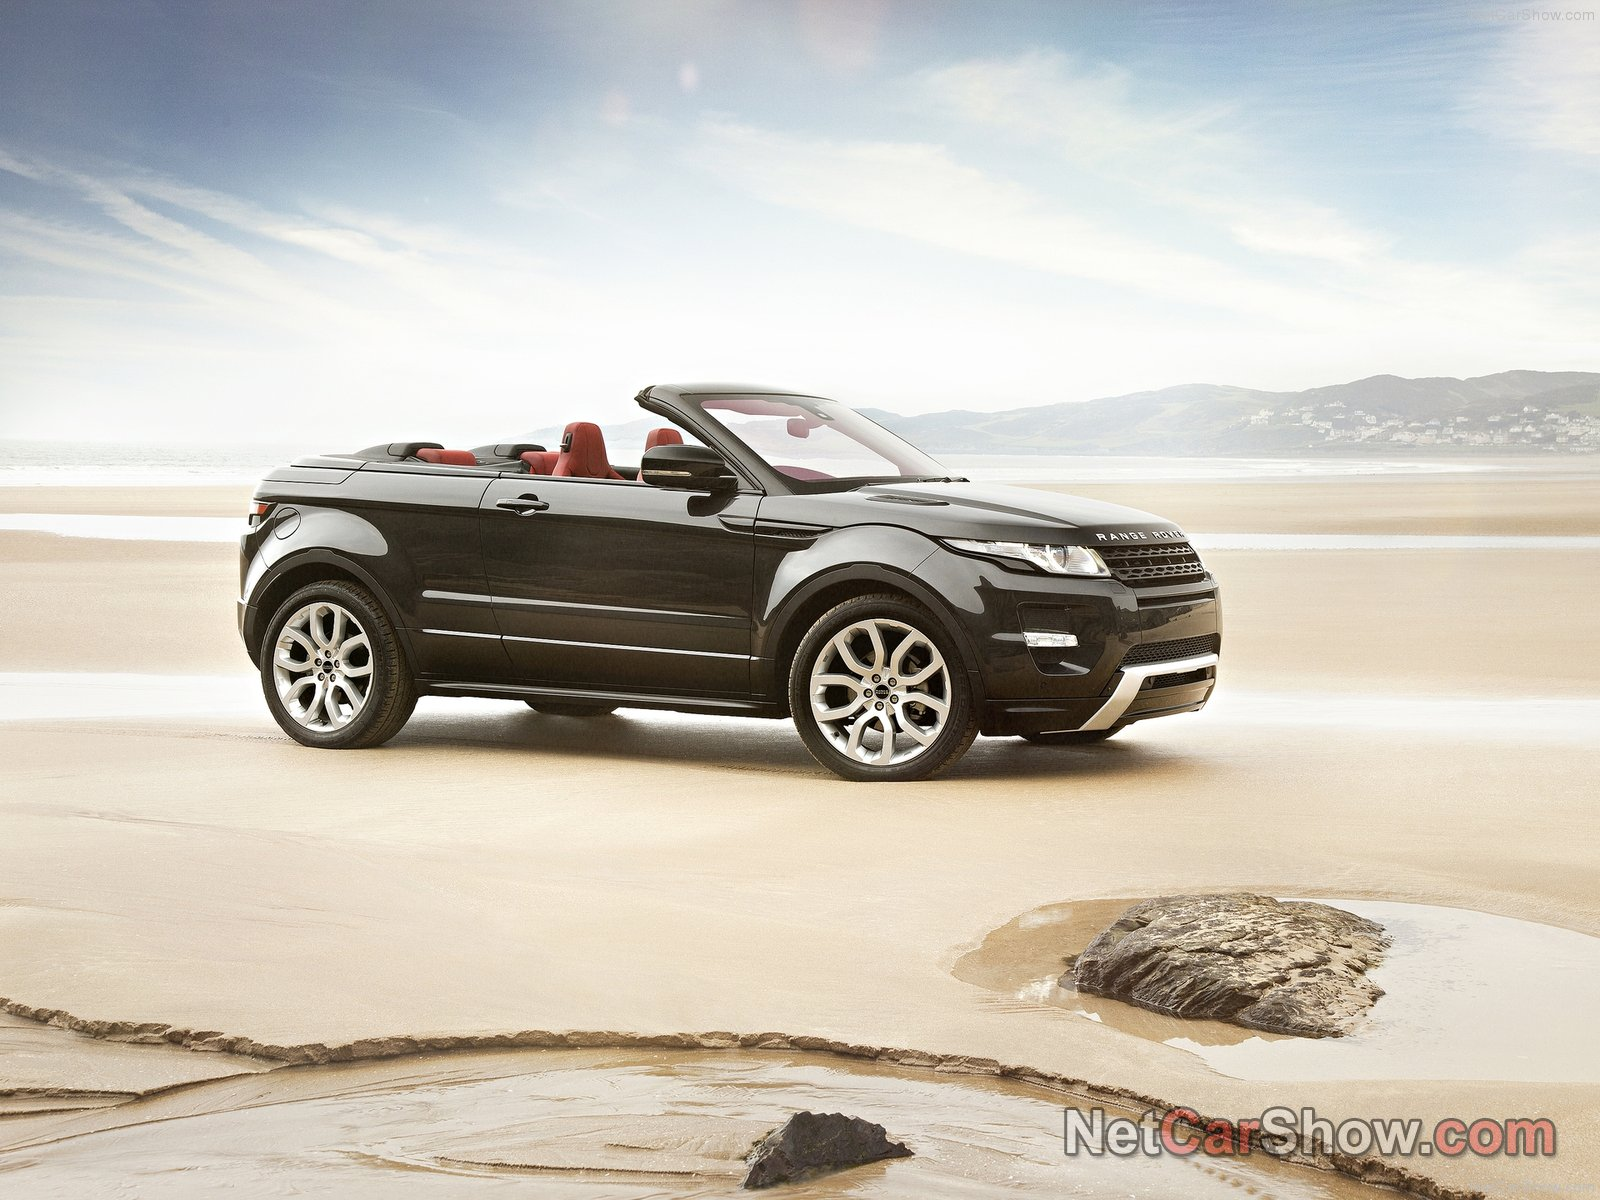 Land Rover Range Rover Evoque Convertible photo 91080